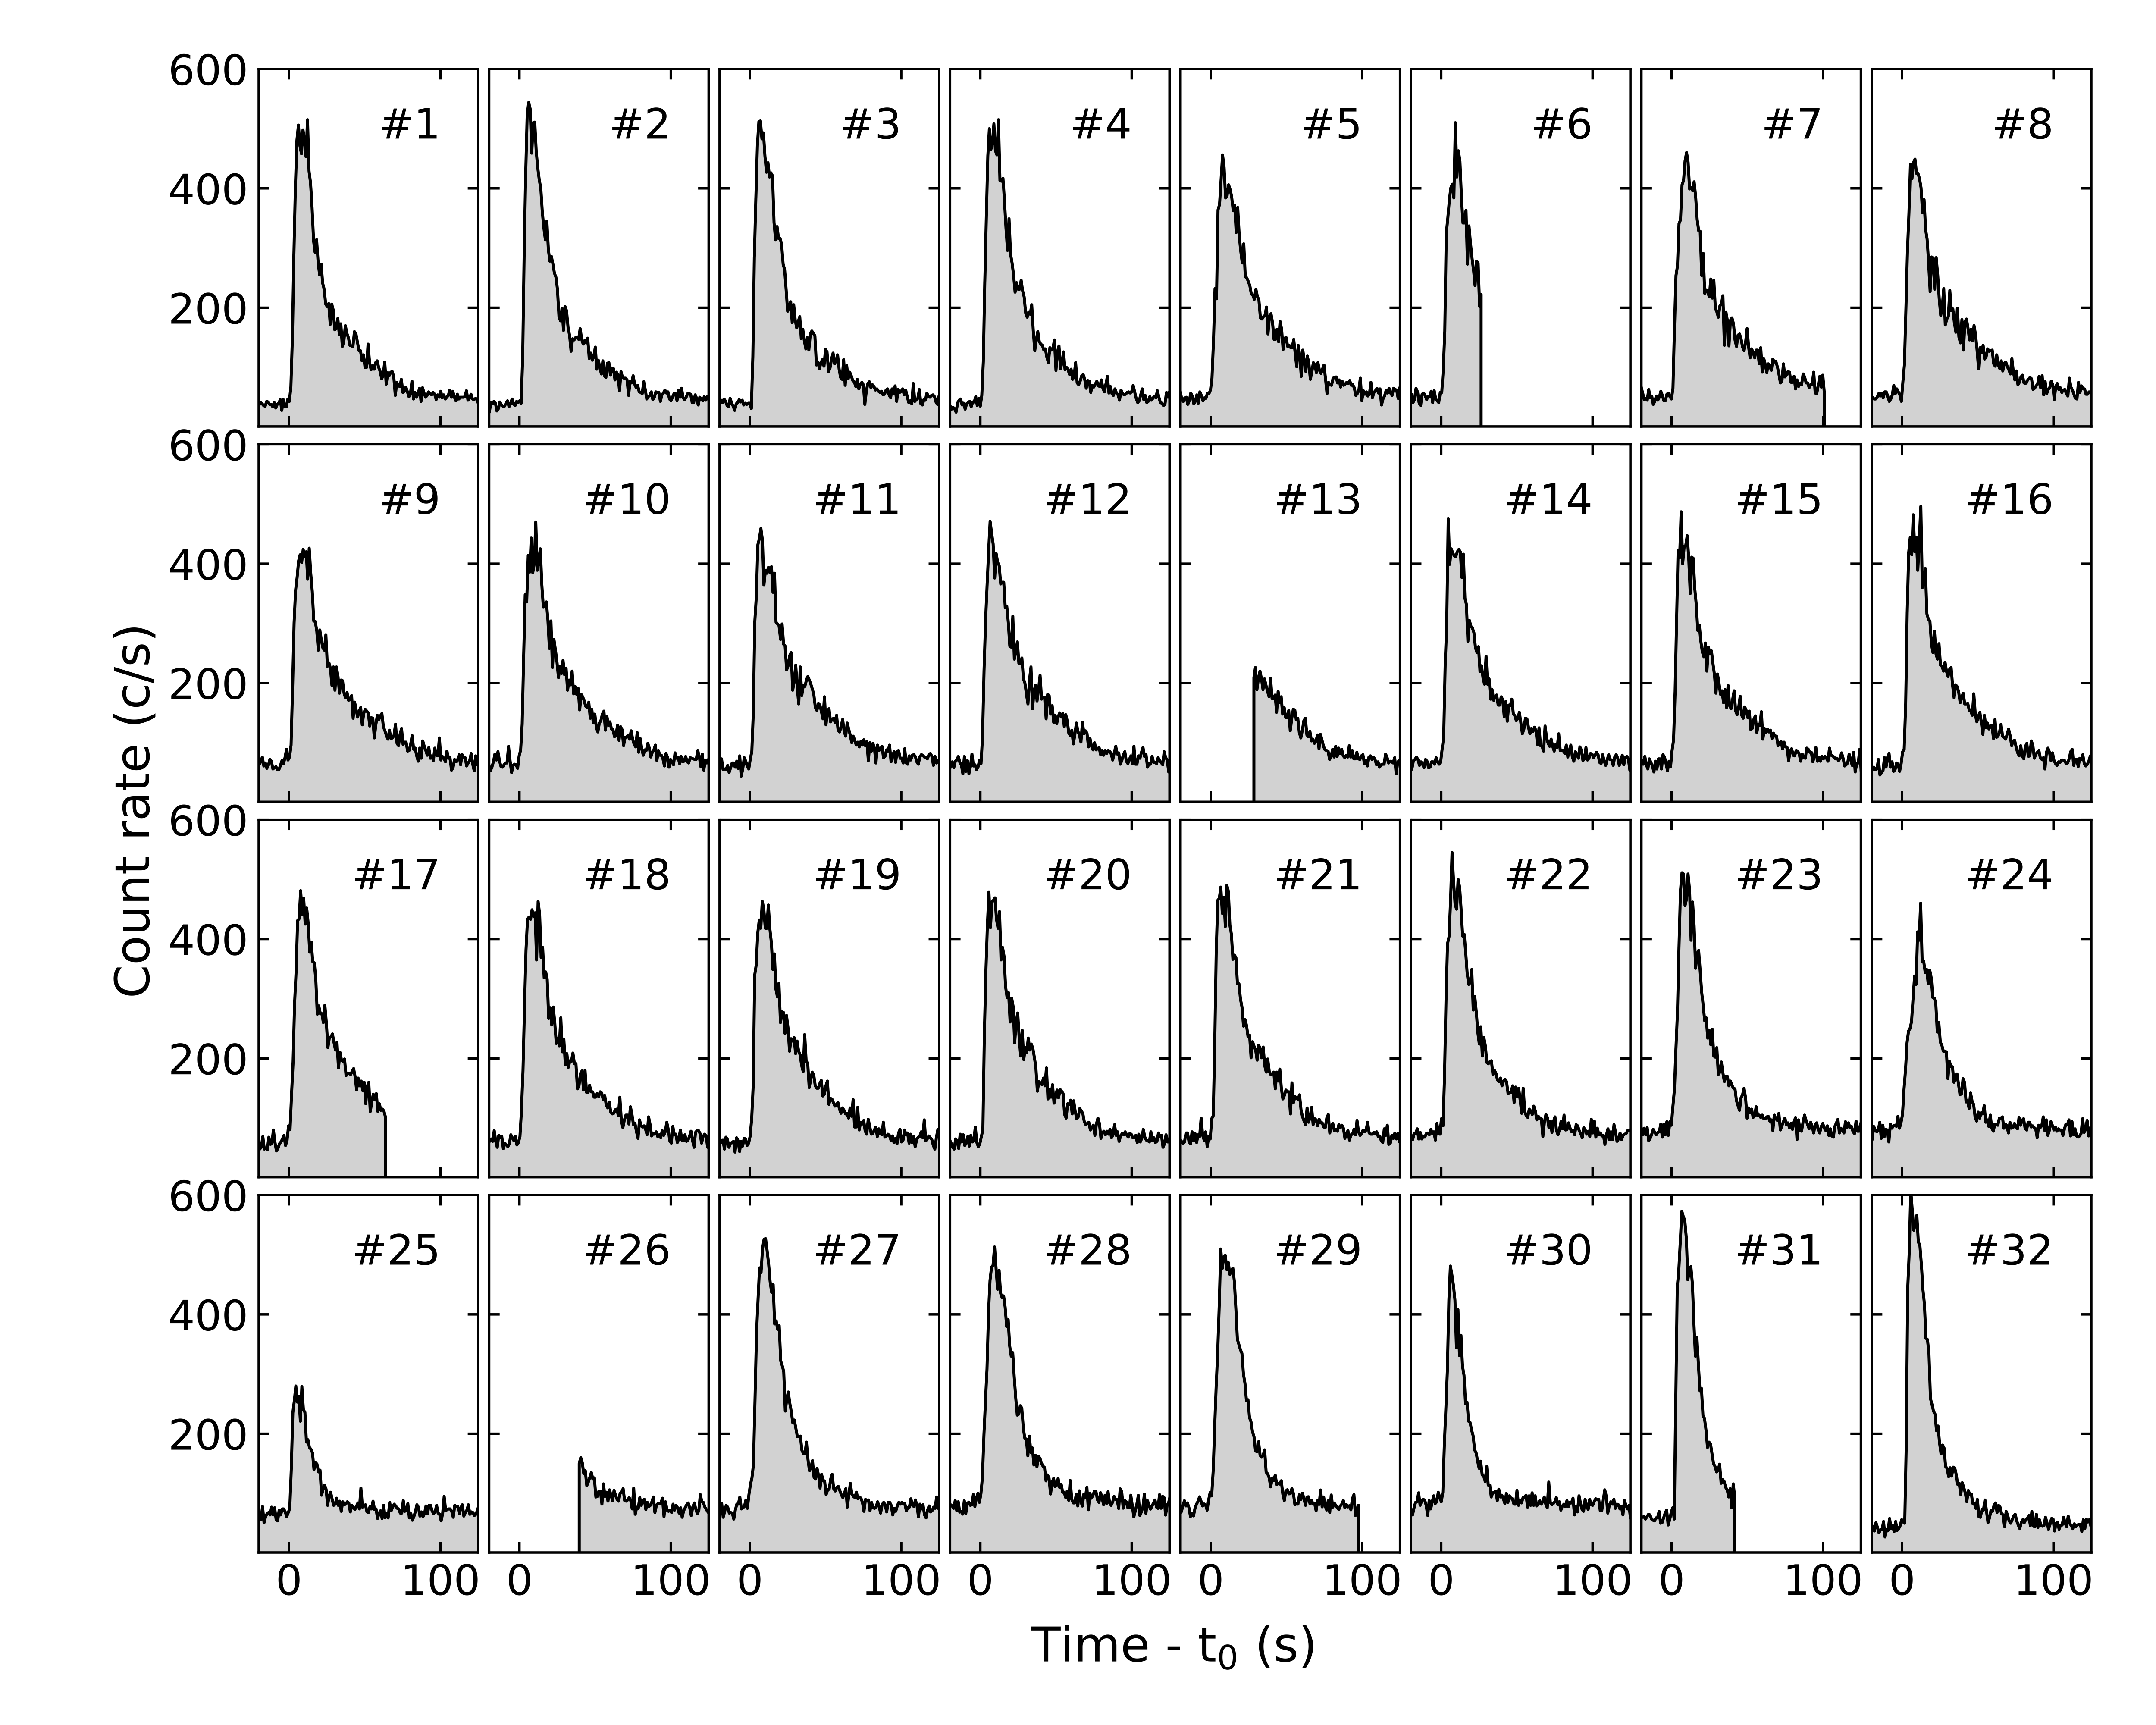 A gallery of the 'light curves' - X-ray brightness as a function of time - of each X-ray burst from XTE J1739-285 observed with NICER during February and March 2020. The light curves are plotted at 1-sec time resolution relative to t0, the start time of each burst, and cover the 0.5-10 keV photon energy band.